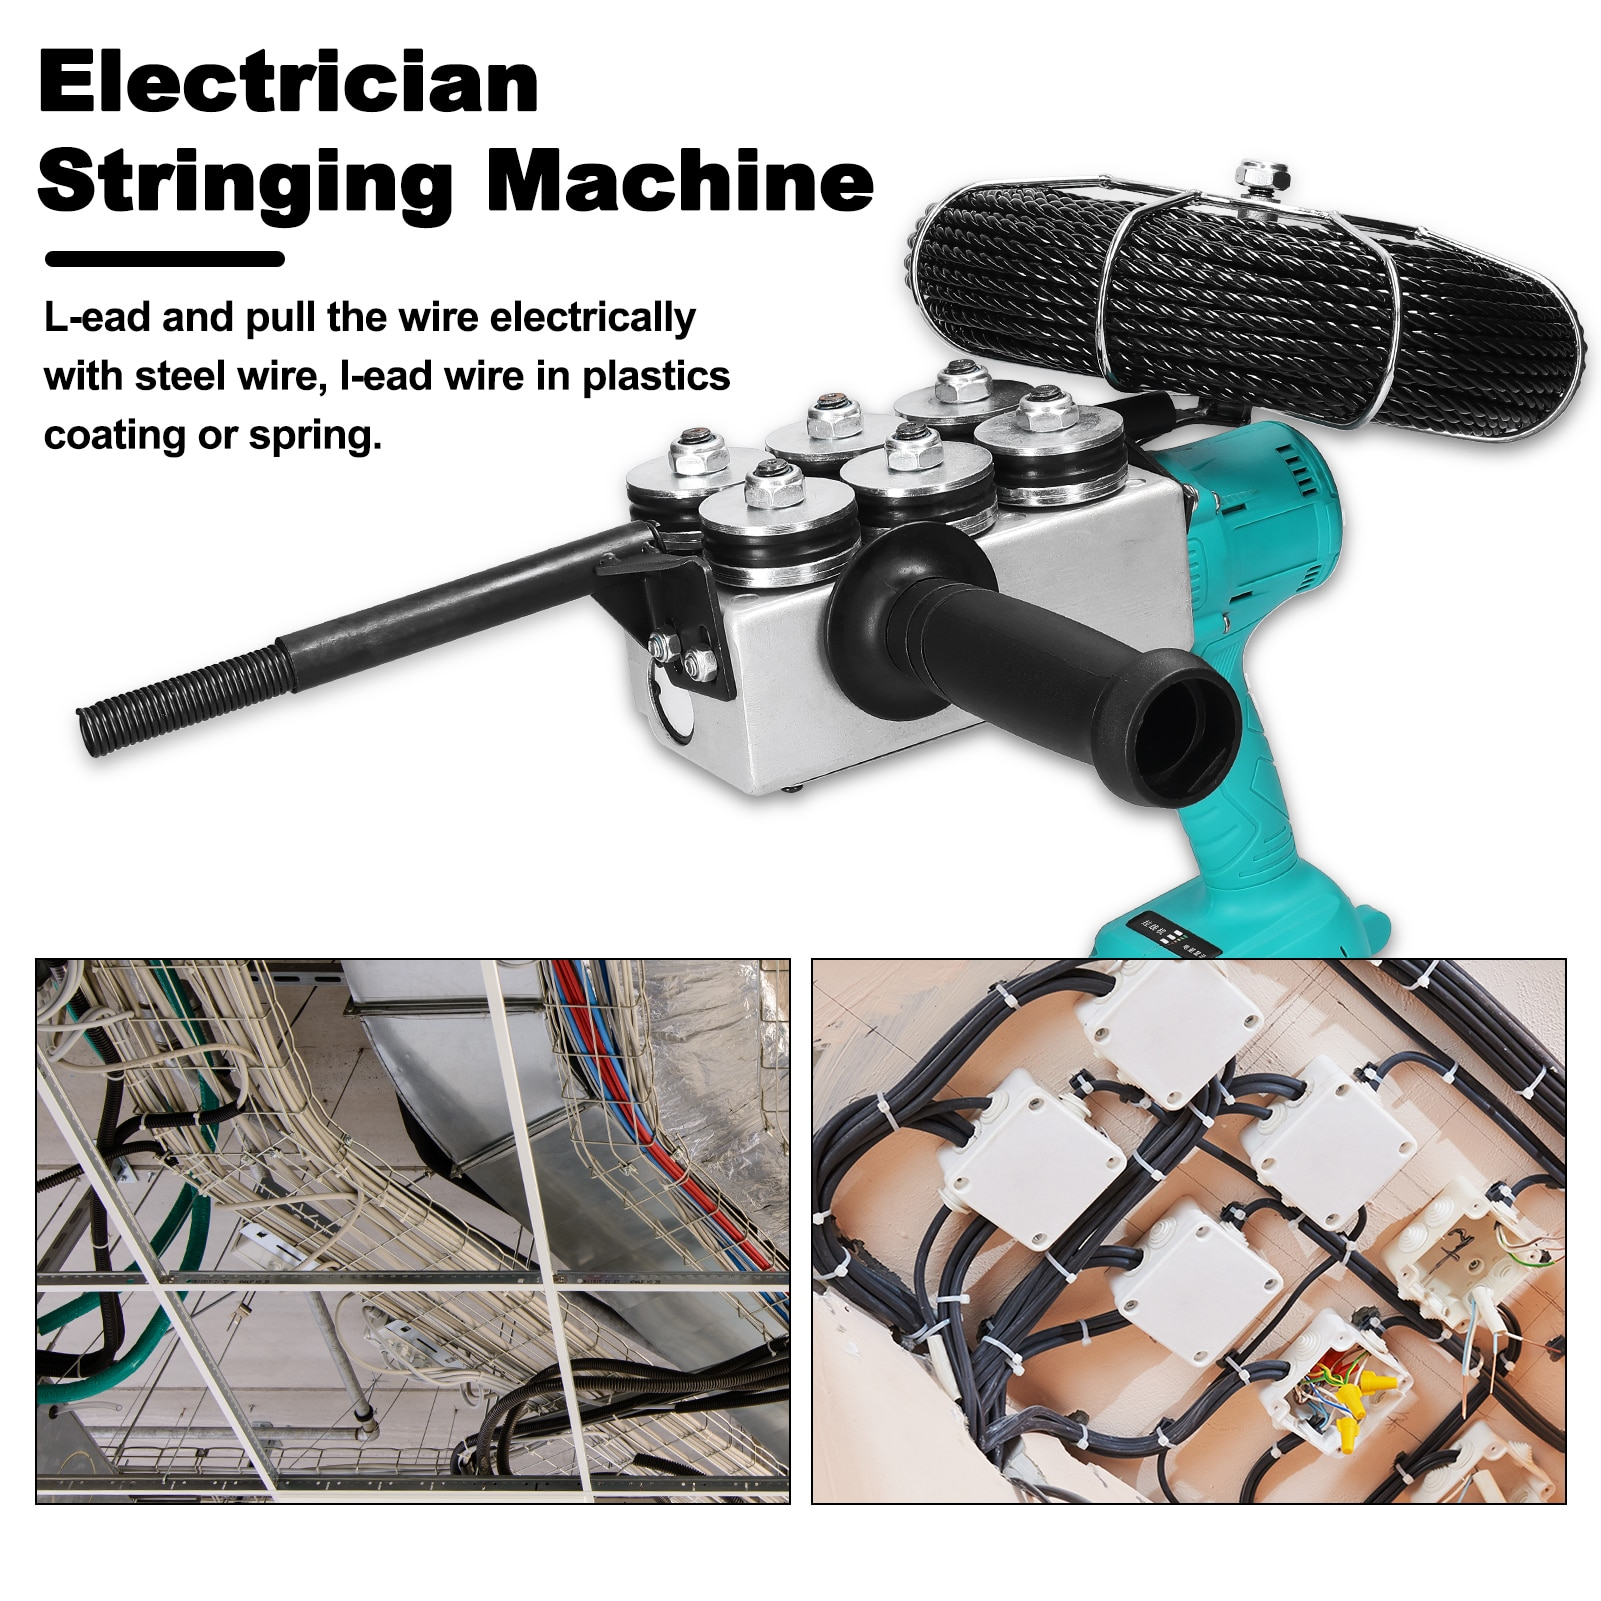 Automatic Brushless Electrician Stringing Machine Wall Wiring Machine Rechargeable Electric Battery Threading Machine For Wire